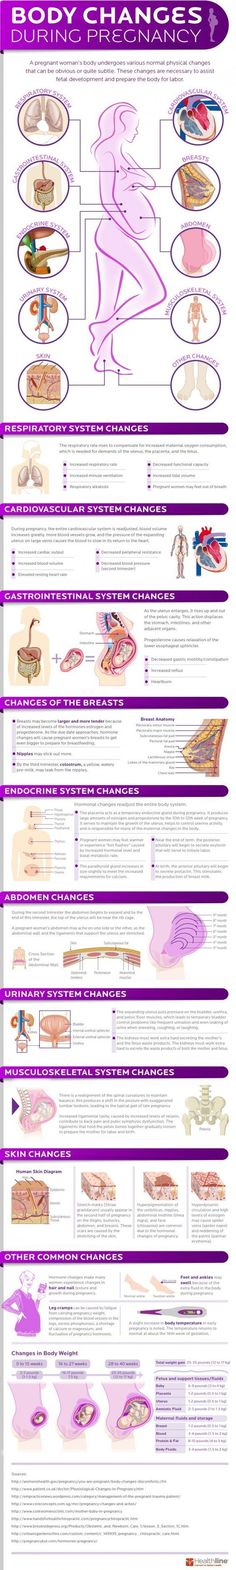 Body Changes During Pregnancy Infographic.